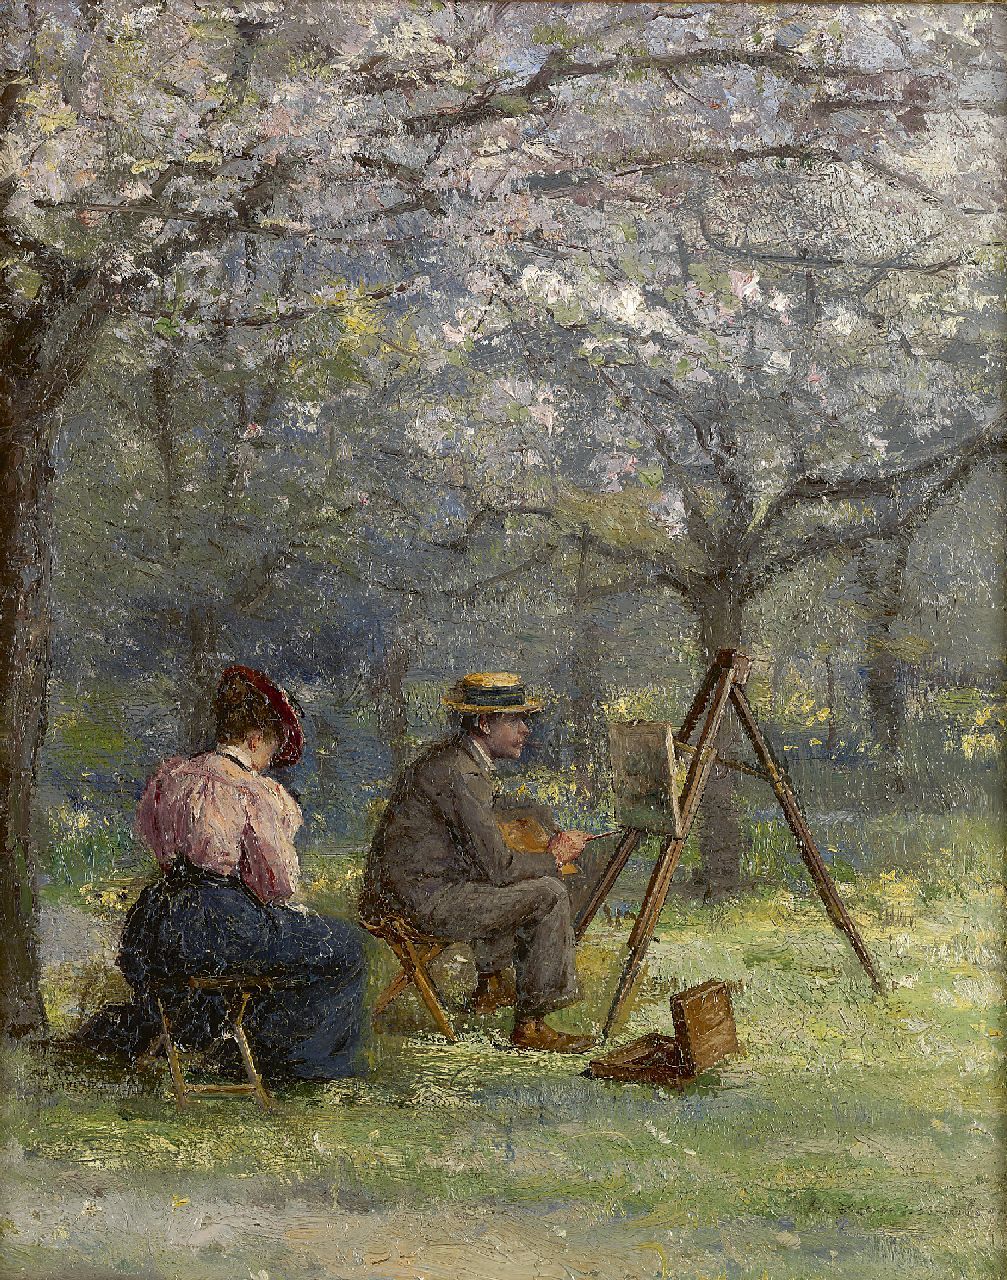 Louis van Engelen | The plein air painter, oil on panel, 24.5 x 19.7 cm, signed l.r.